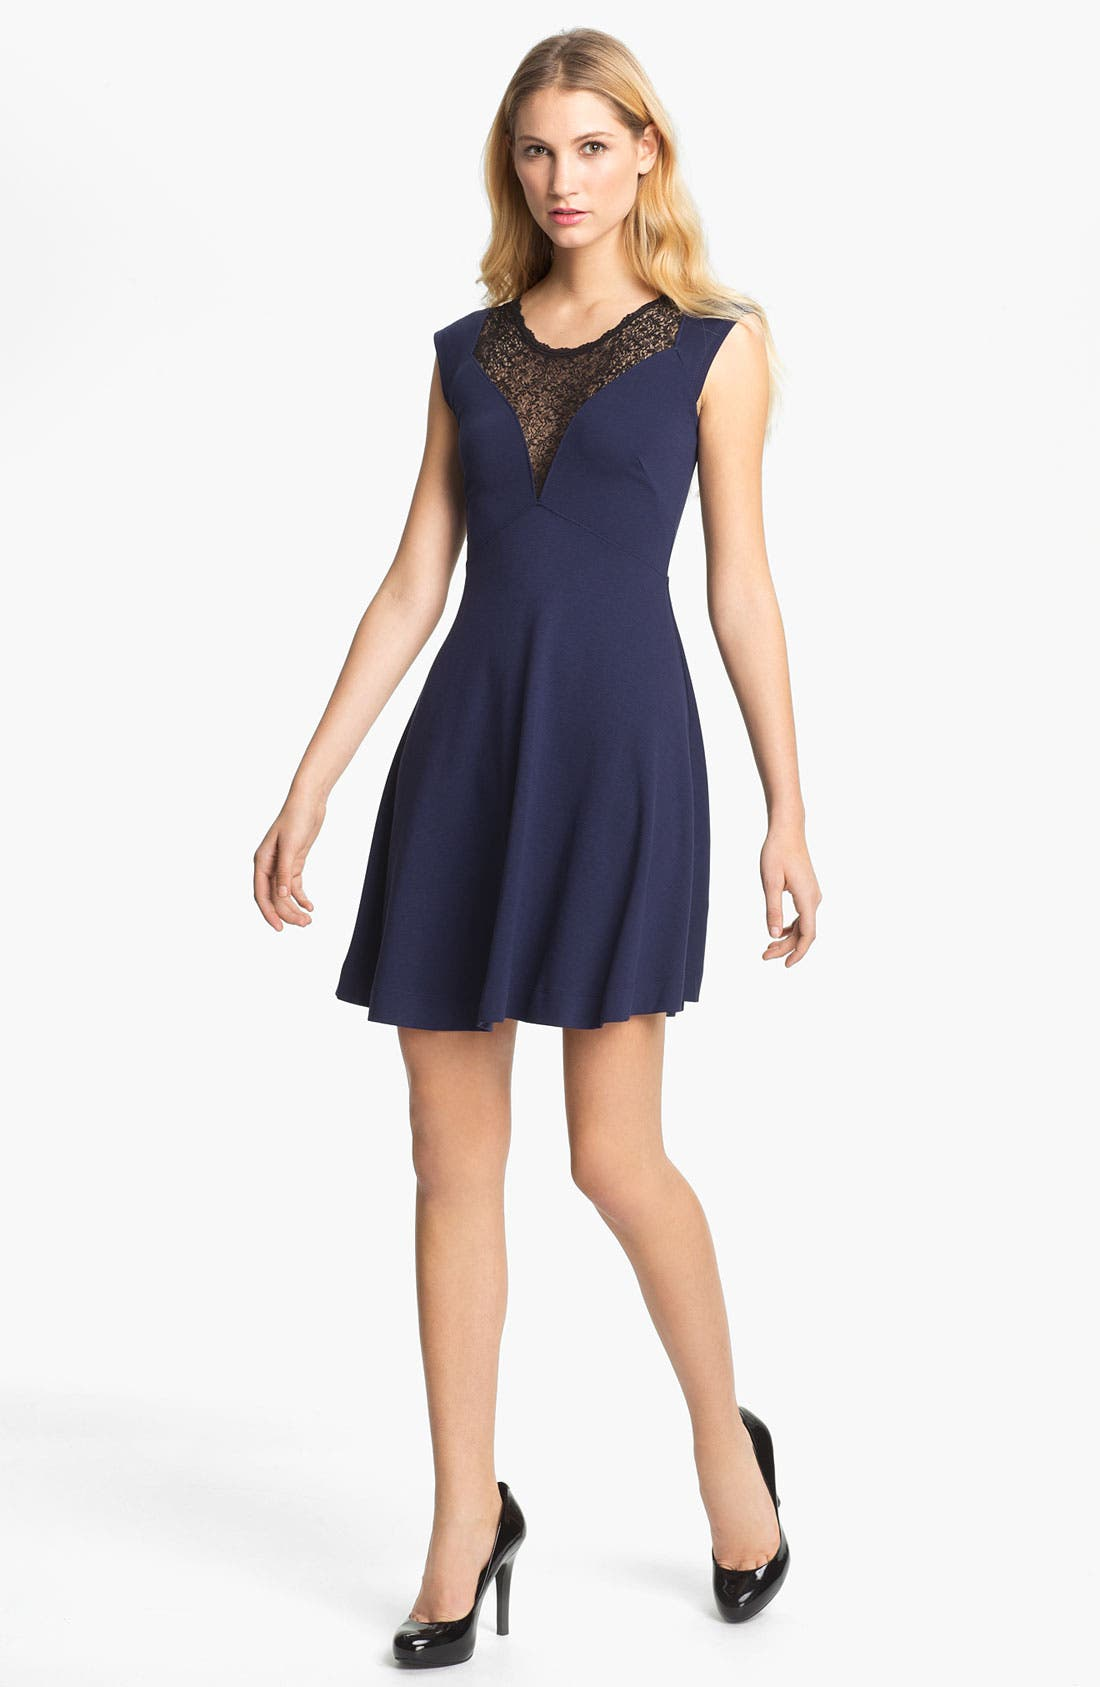 Main Image - French Connection 'Alicia' Lace Yoke Skater Dress